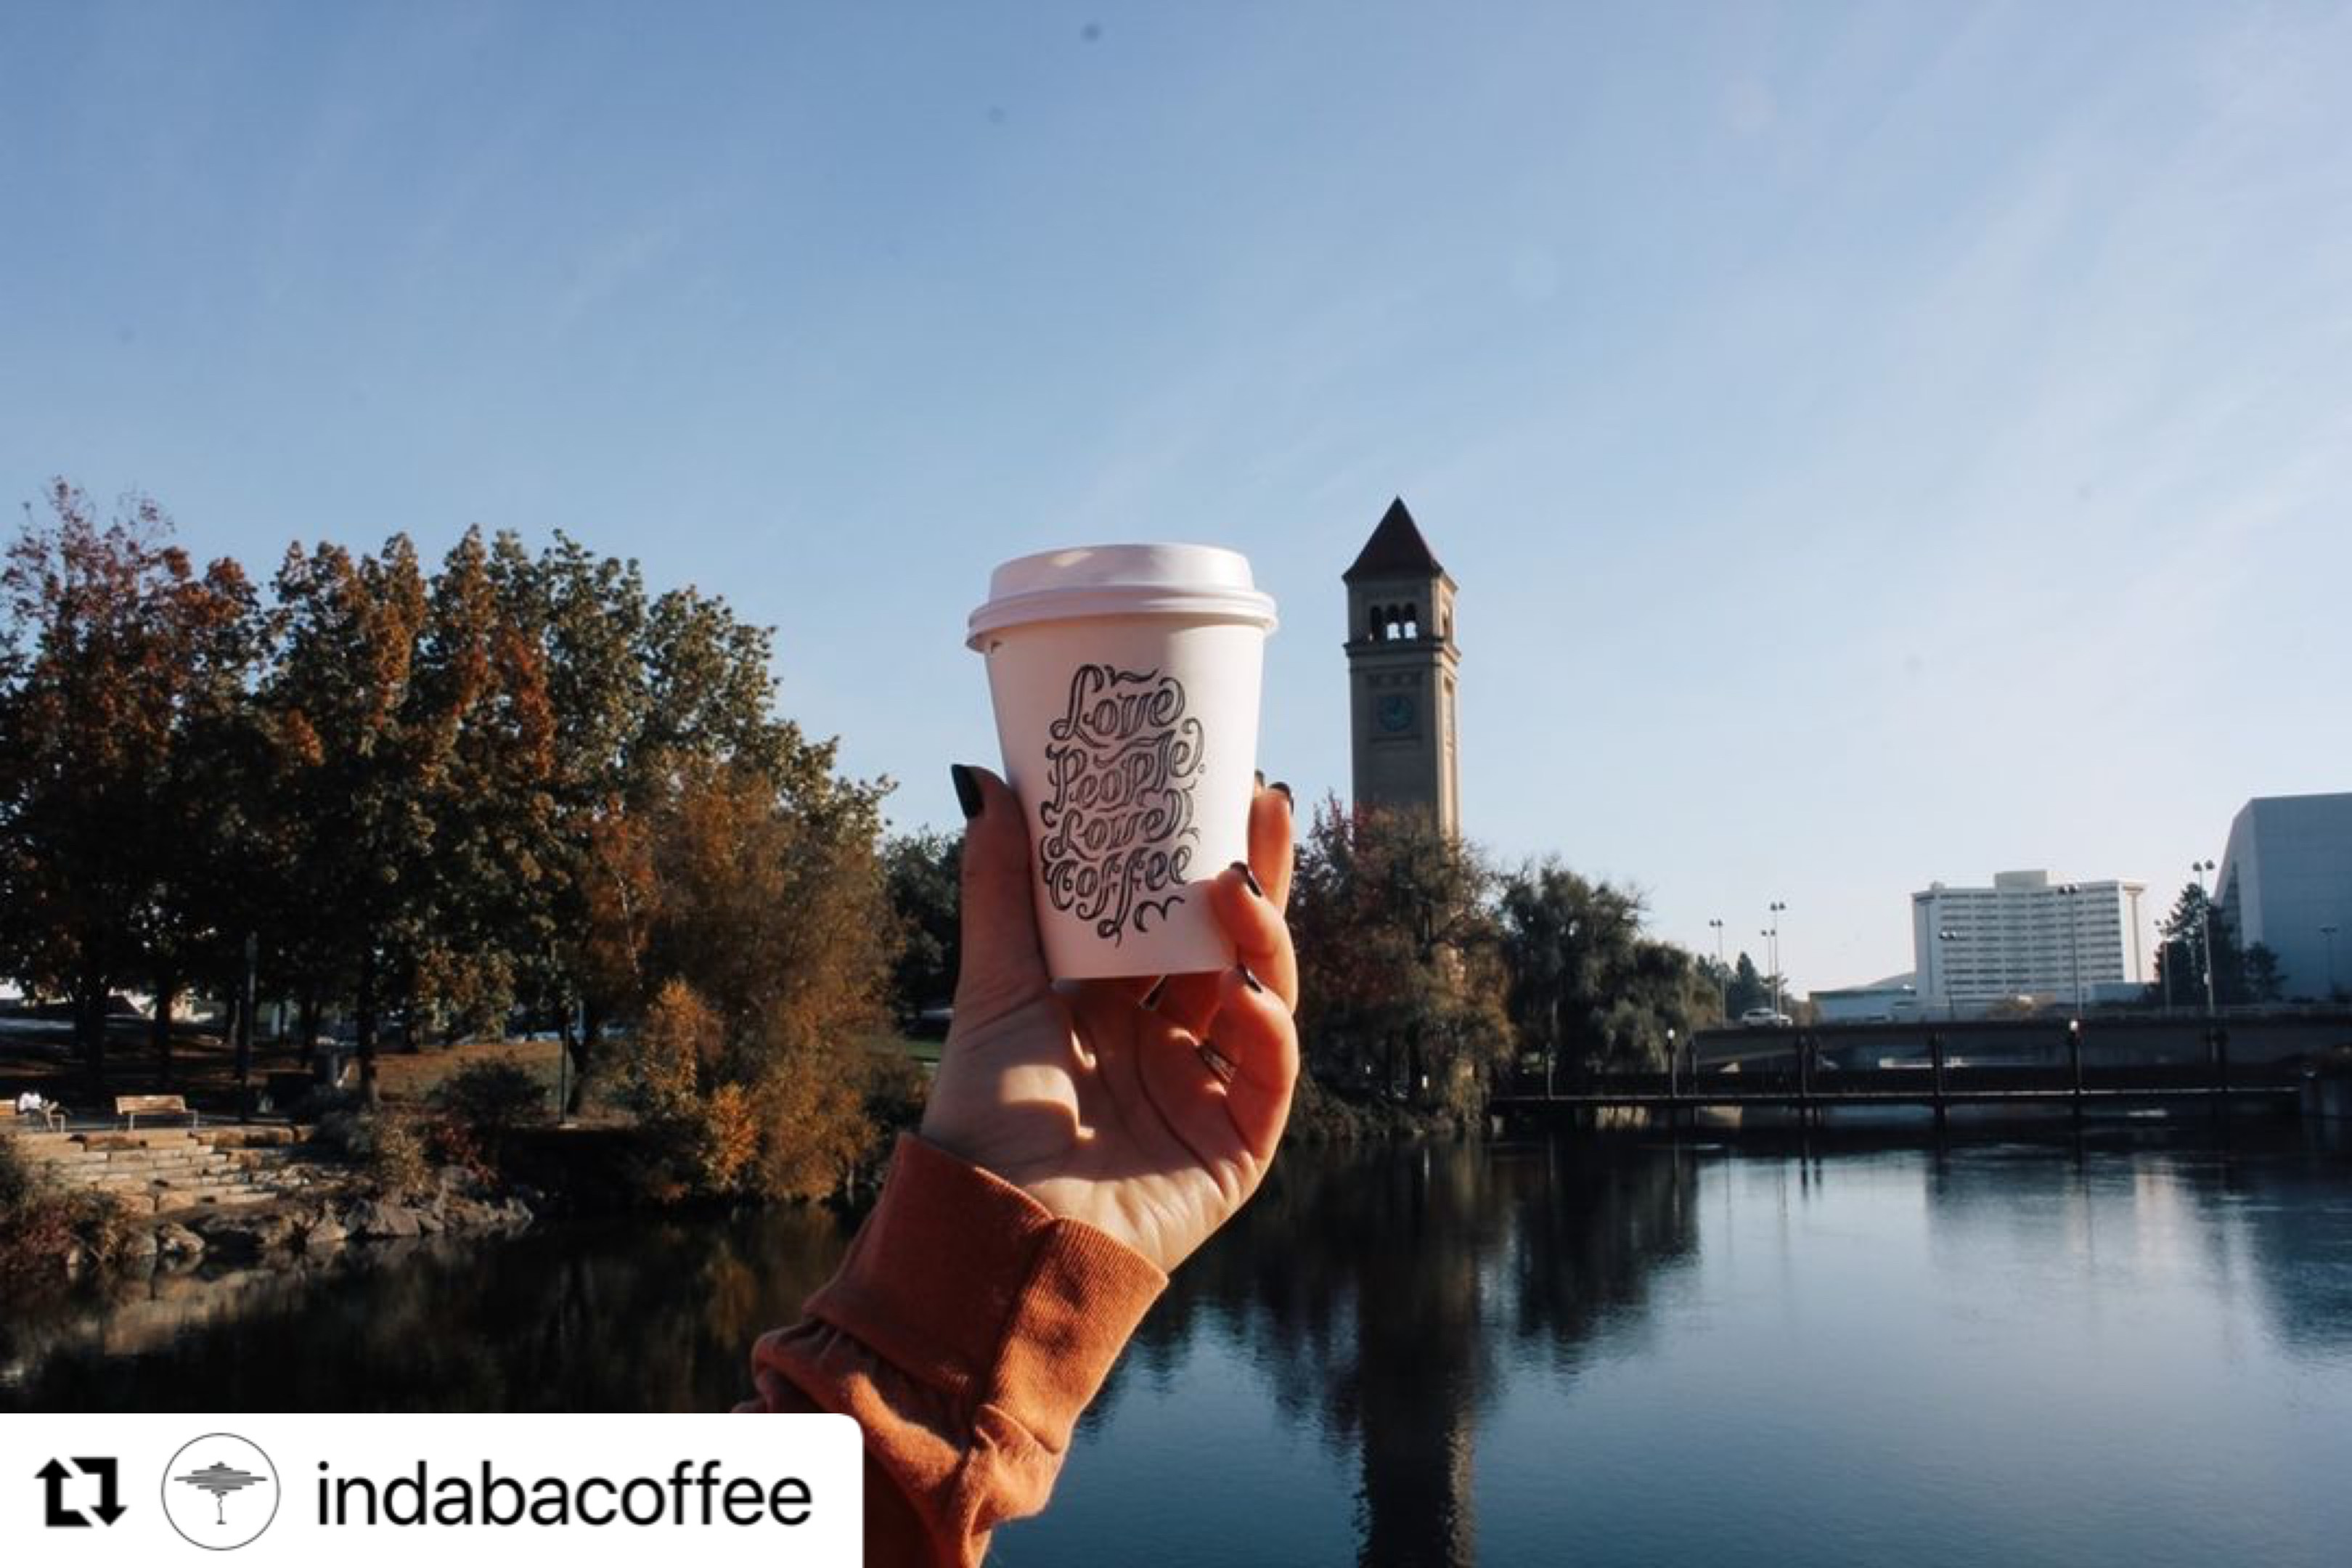 We're offering daily $1 coffee to thousands across our network